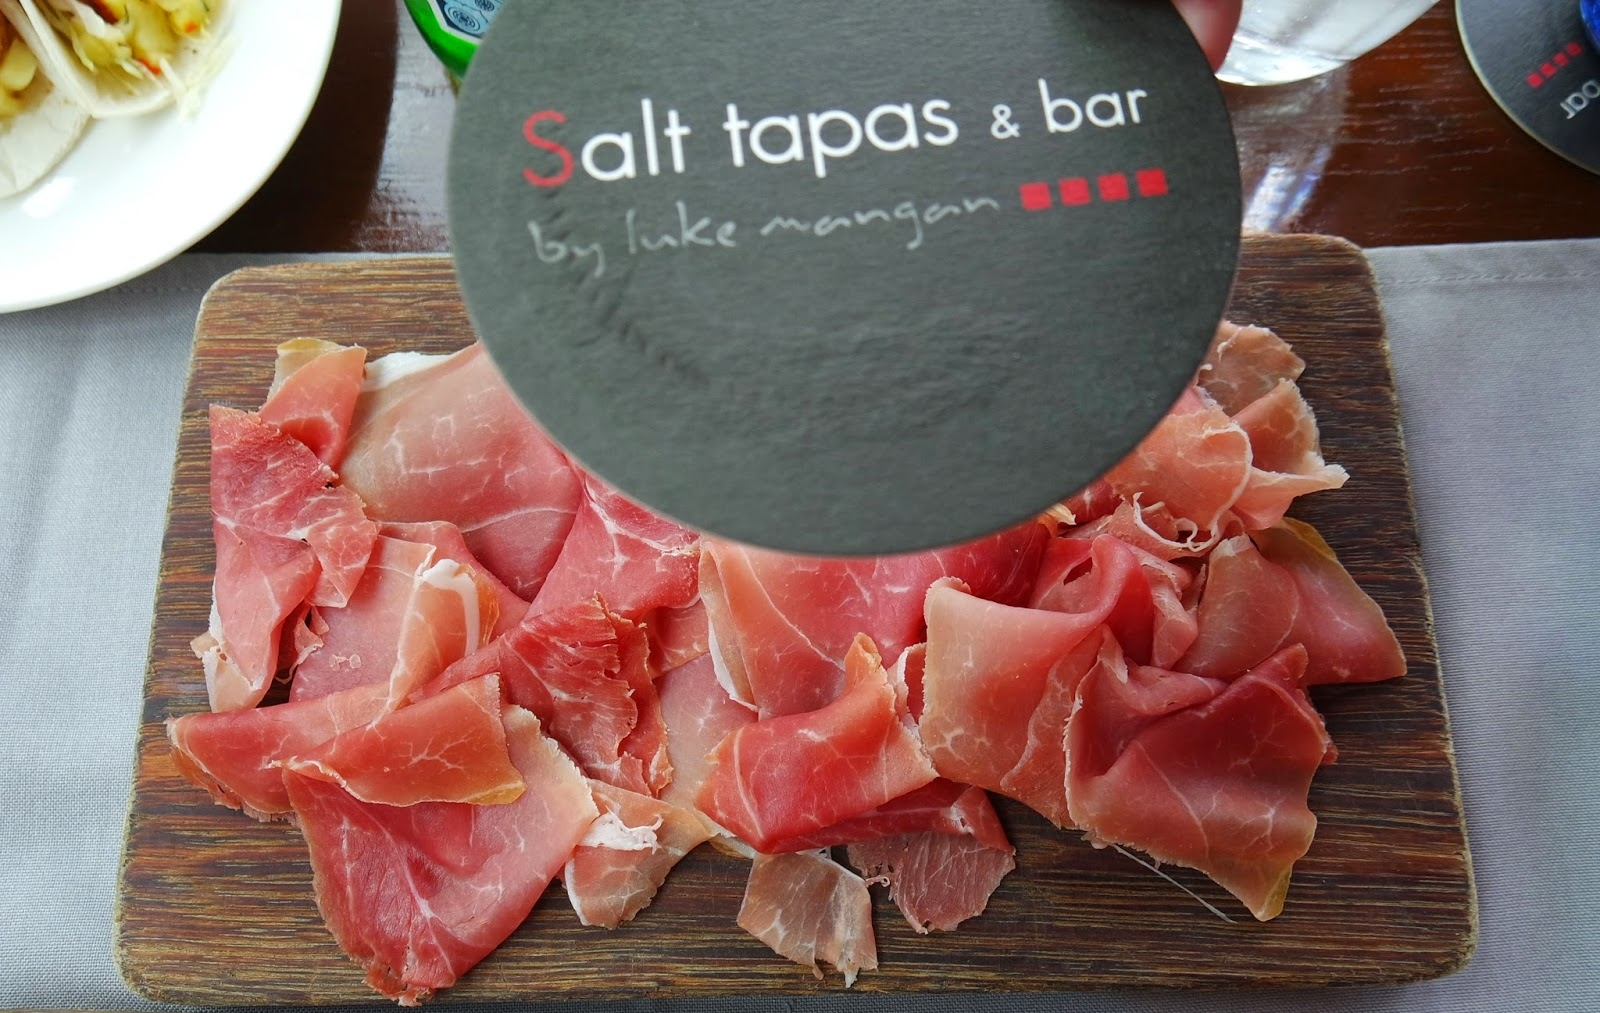 Salt Tapas and Bar - Parma Prosciutto